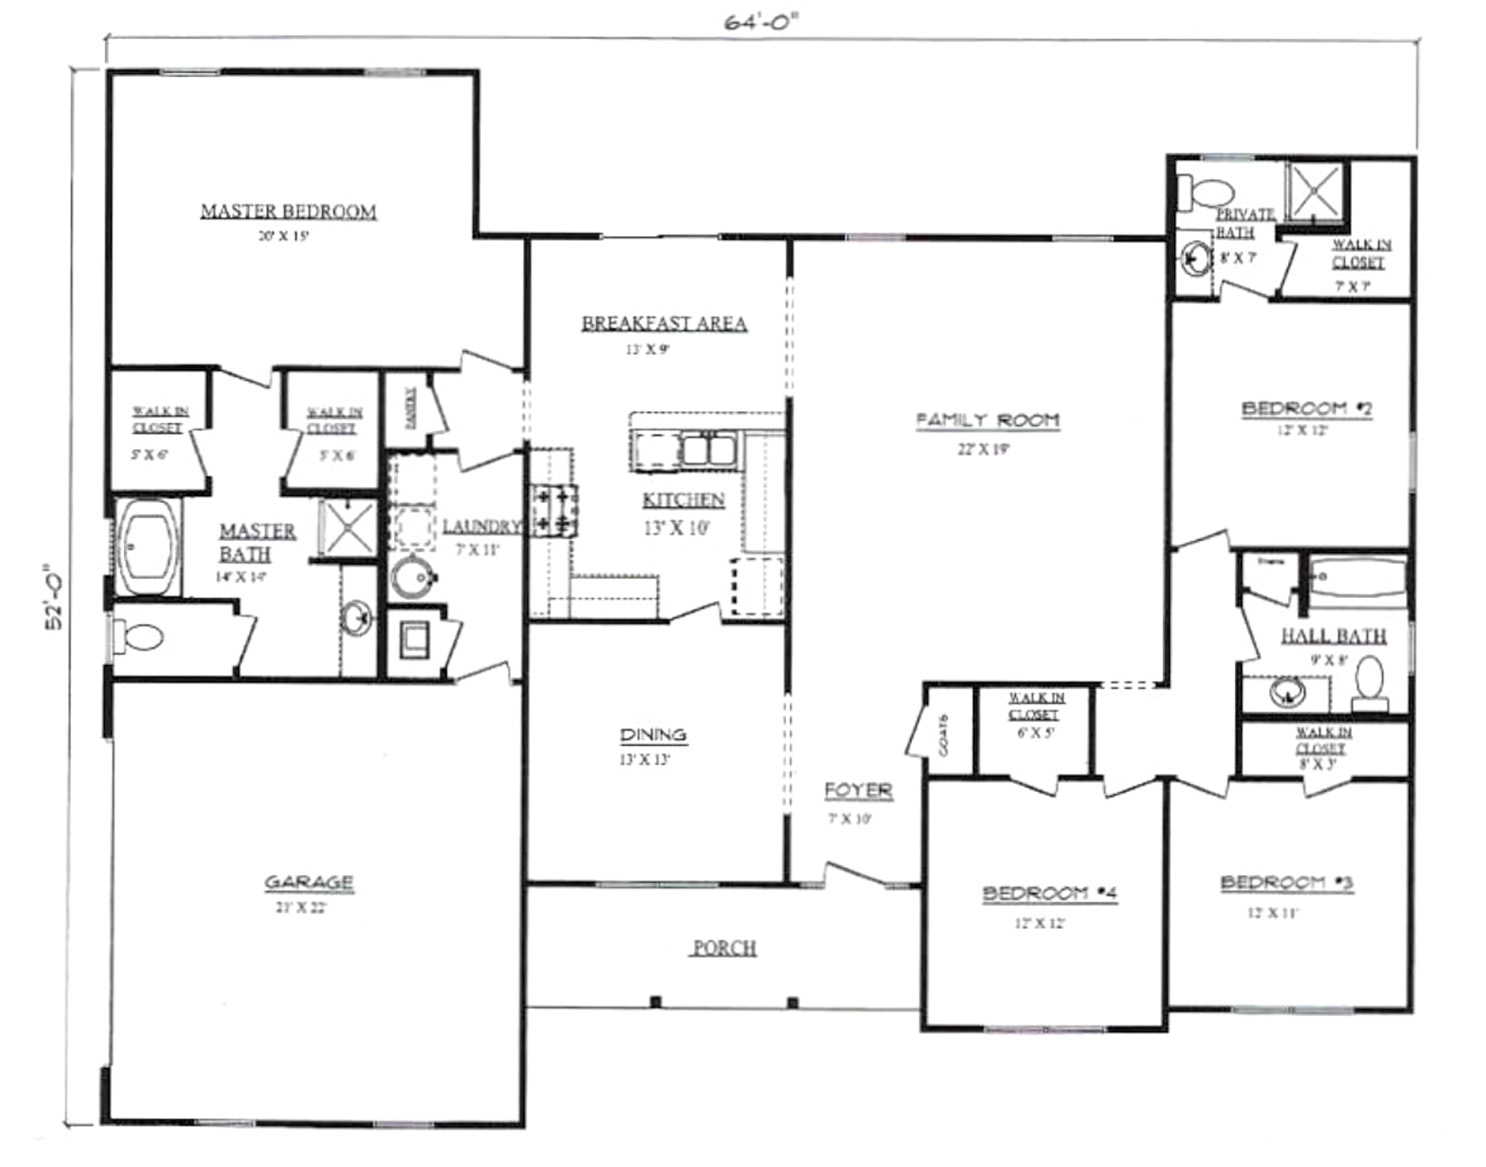 Plans for Monticello Pennyworth Homes Tallahassee Home Builder